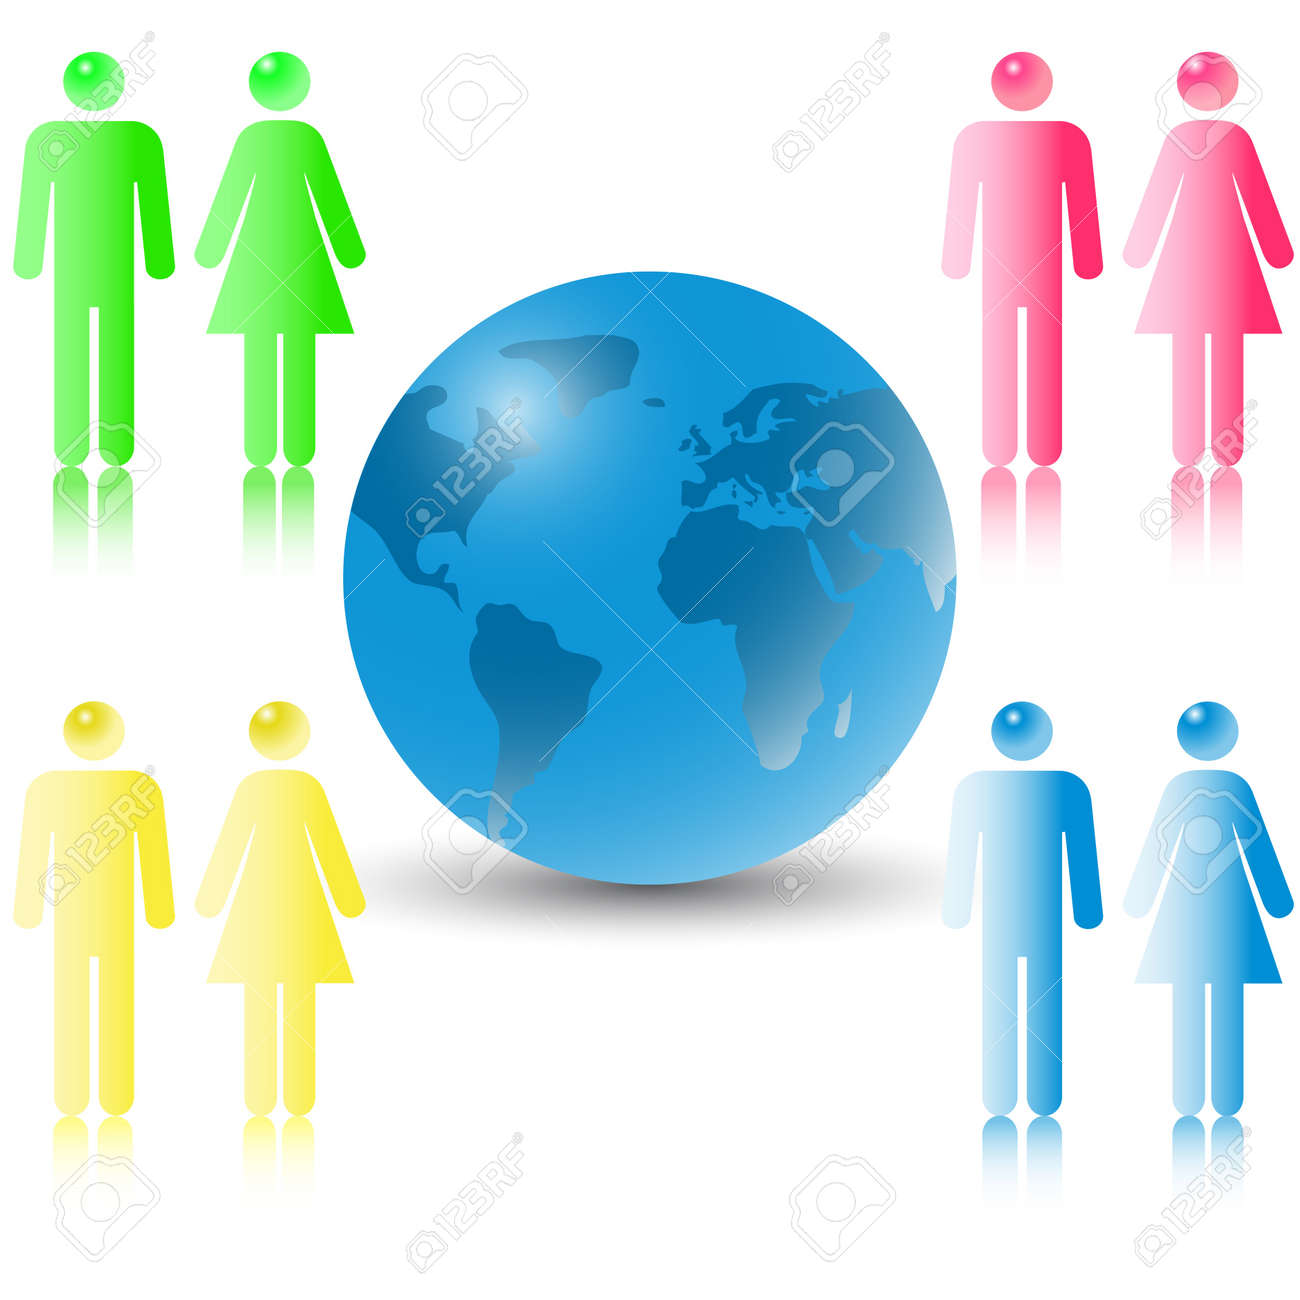 Businessmen, the man and the woman, meet to conclude the bargain on world globe. Stock Vector - 8841043